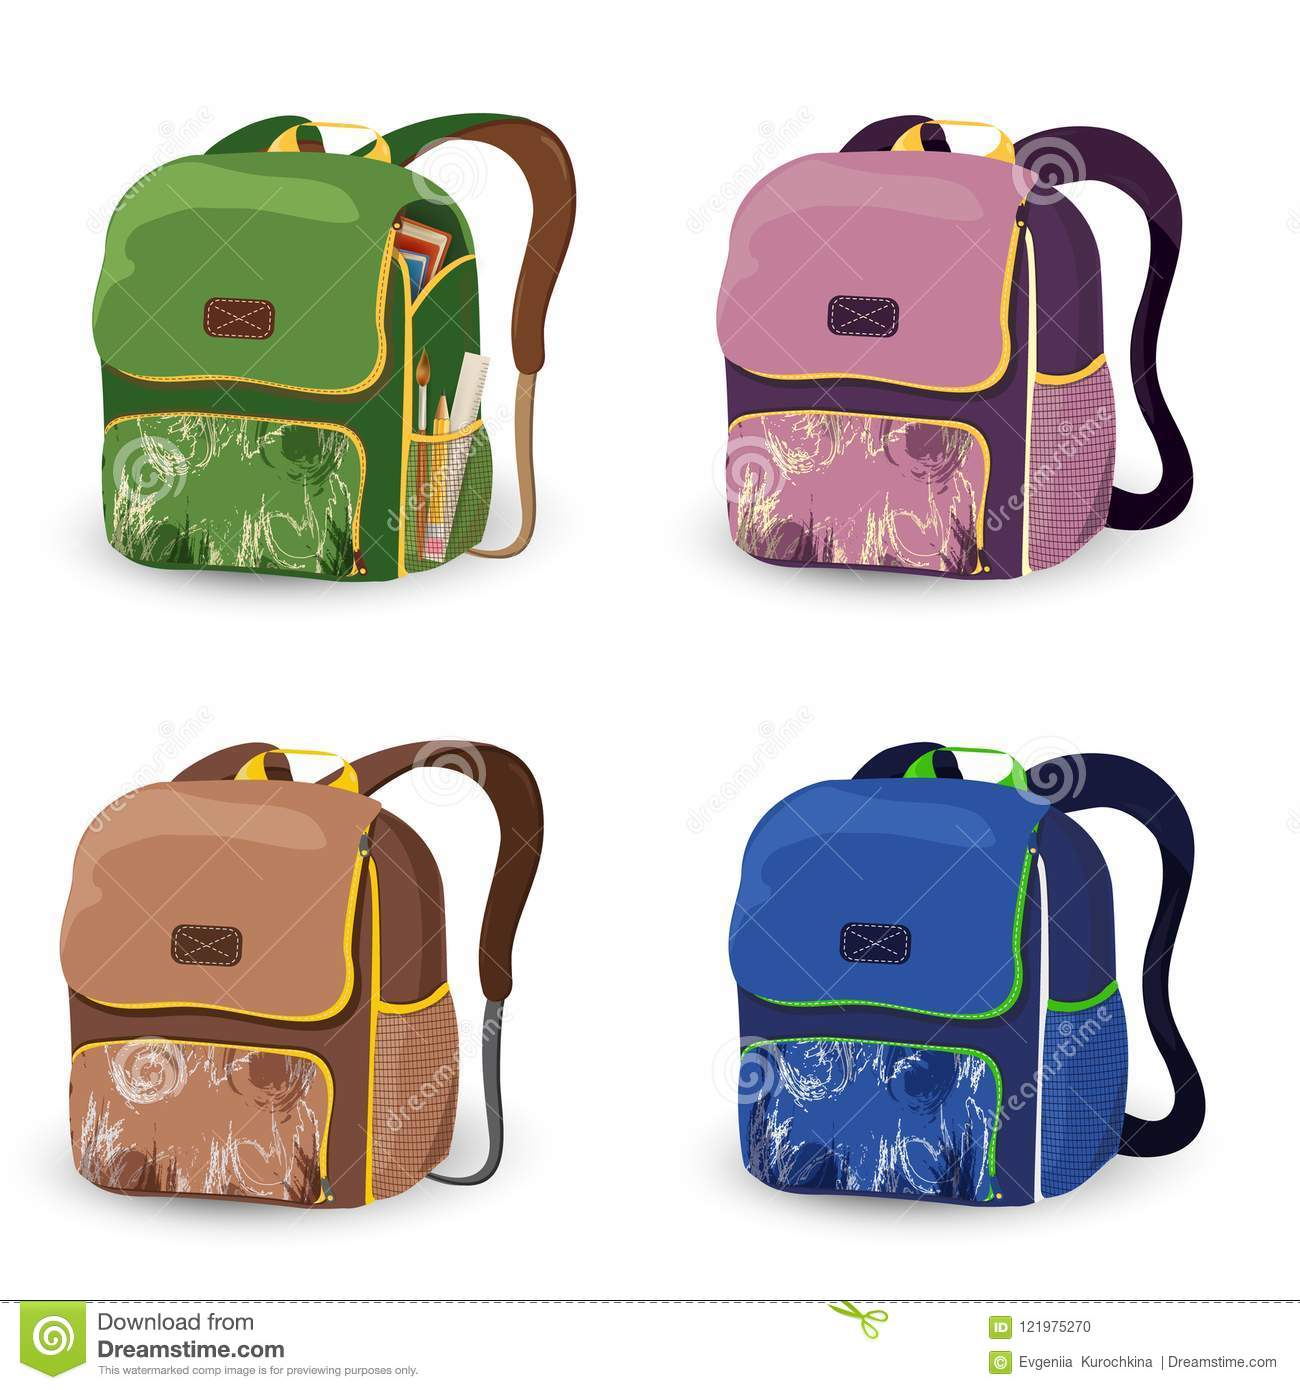 96221b8d49f7 Set of school bag kids isolated on white background. School bag cartoon.  Backpacks